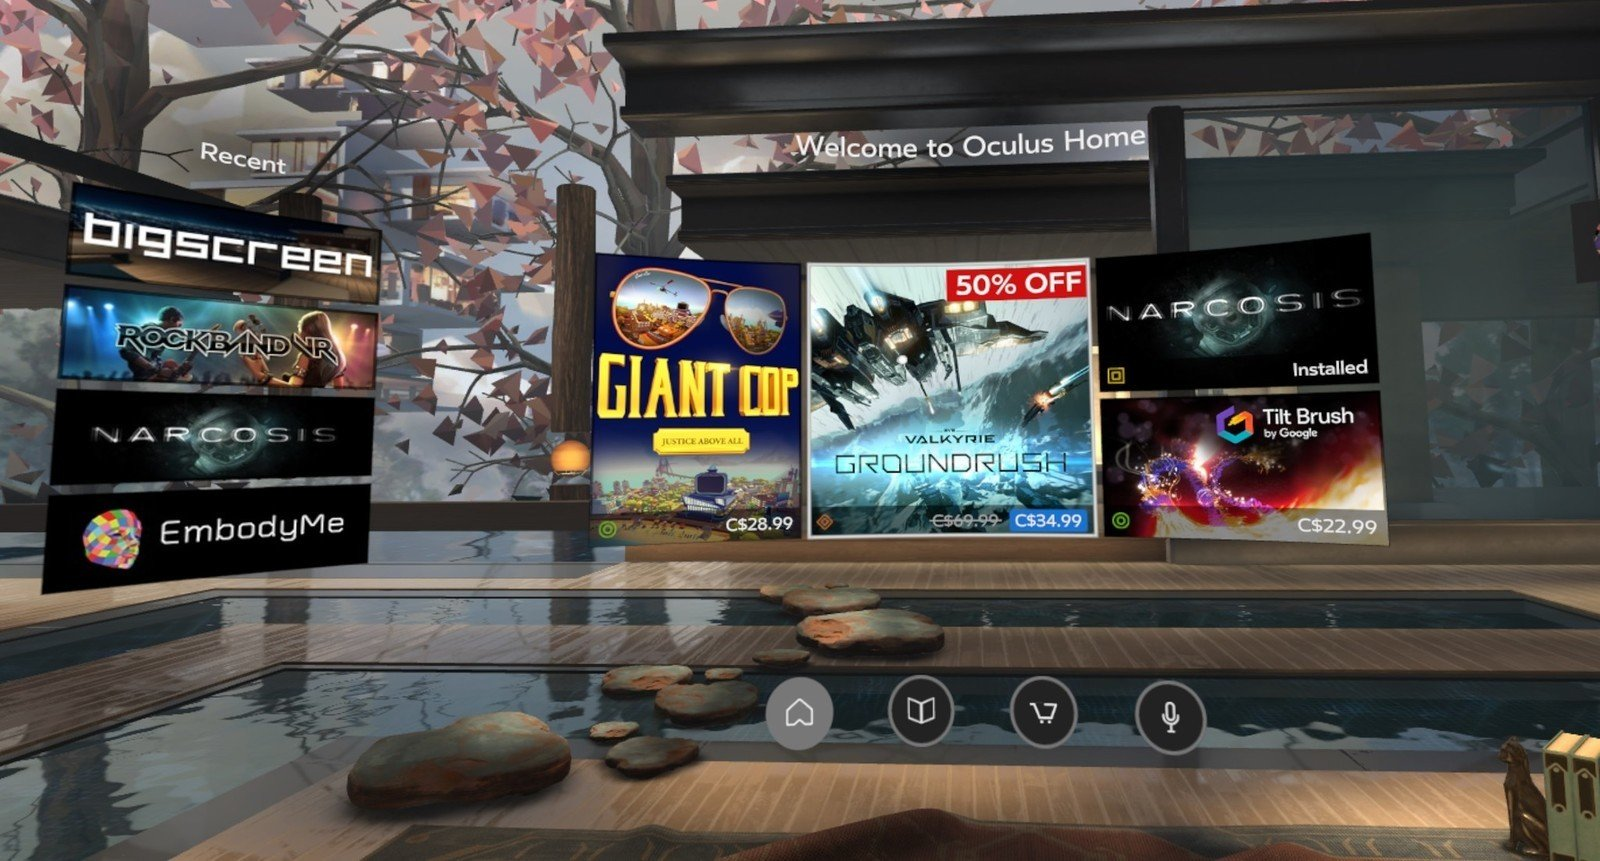 How to use the Oculus Store